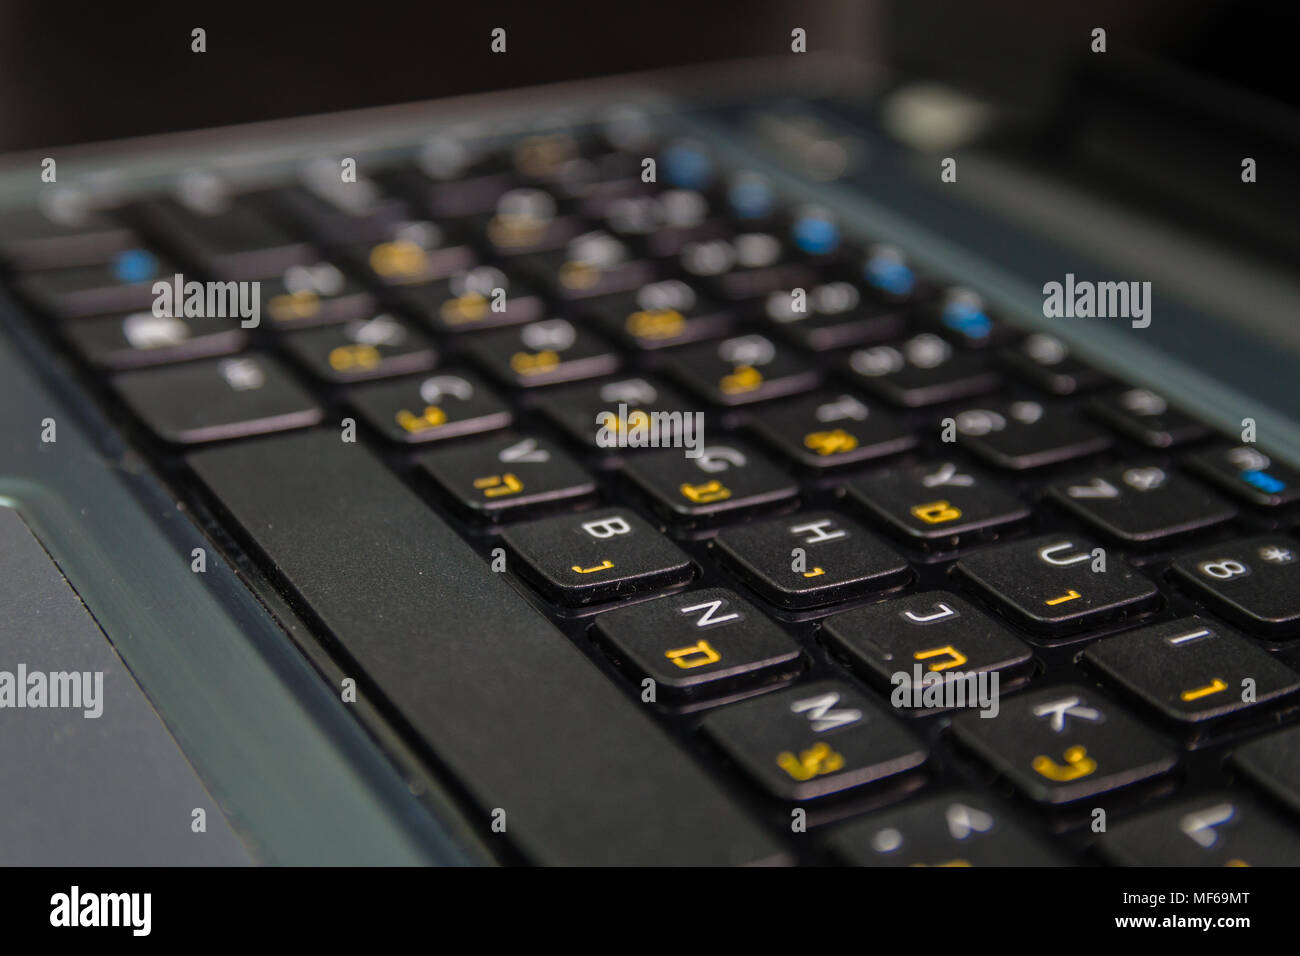 Keyboard with letters in Hebrew and English - Laptop keyboard - Close up - Stock Image